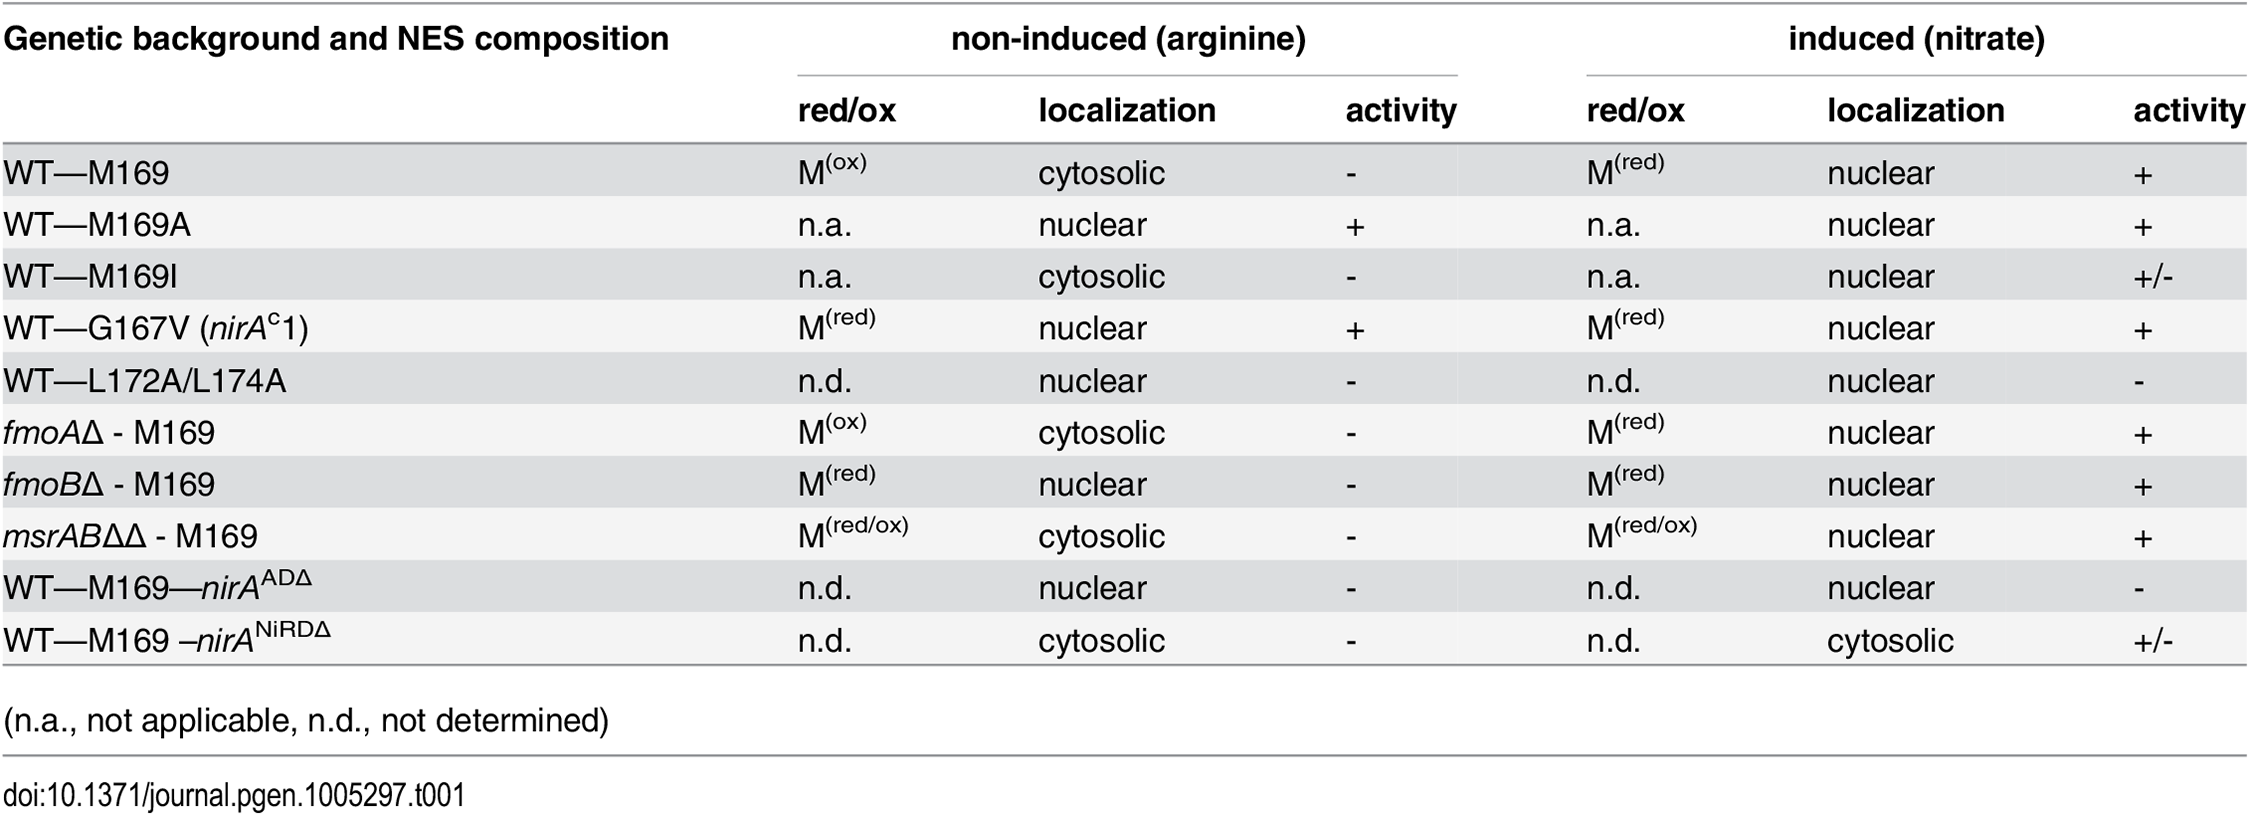 Overview of correlations between NES sequences, oxidation status of M169 (red/ox), NirA-GFP subcellular localization and NirA transcriptional activity in different genetic backgrounds of strains grown under non-inducing or inducing conditions.